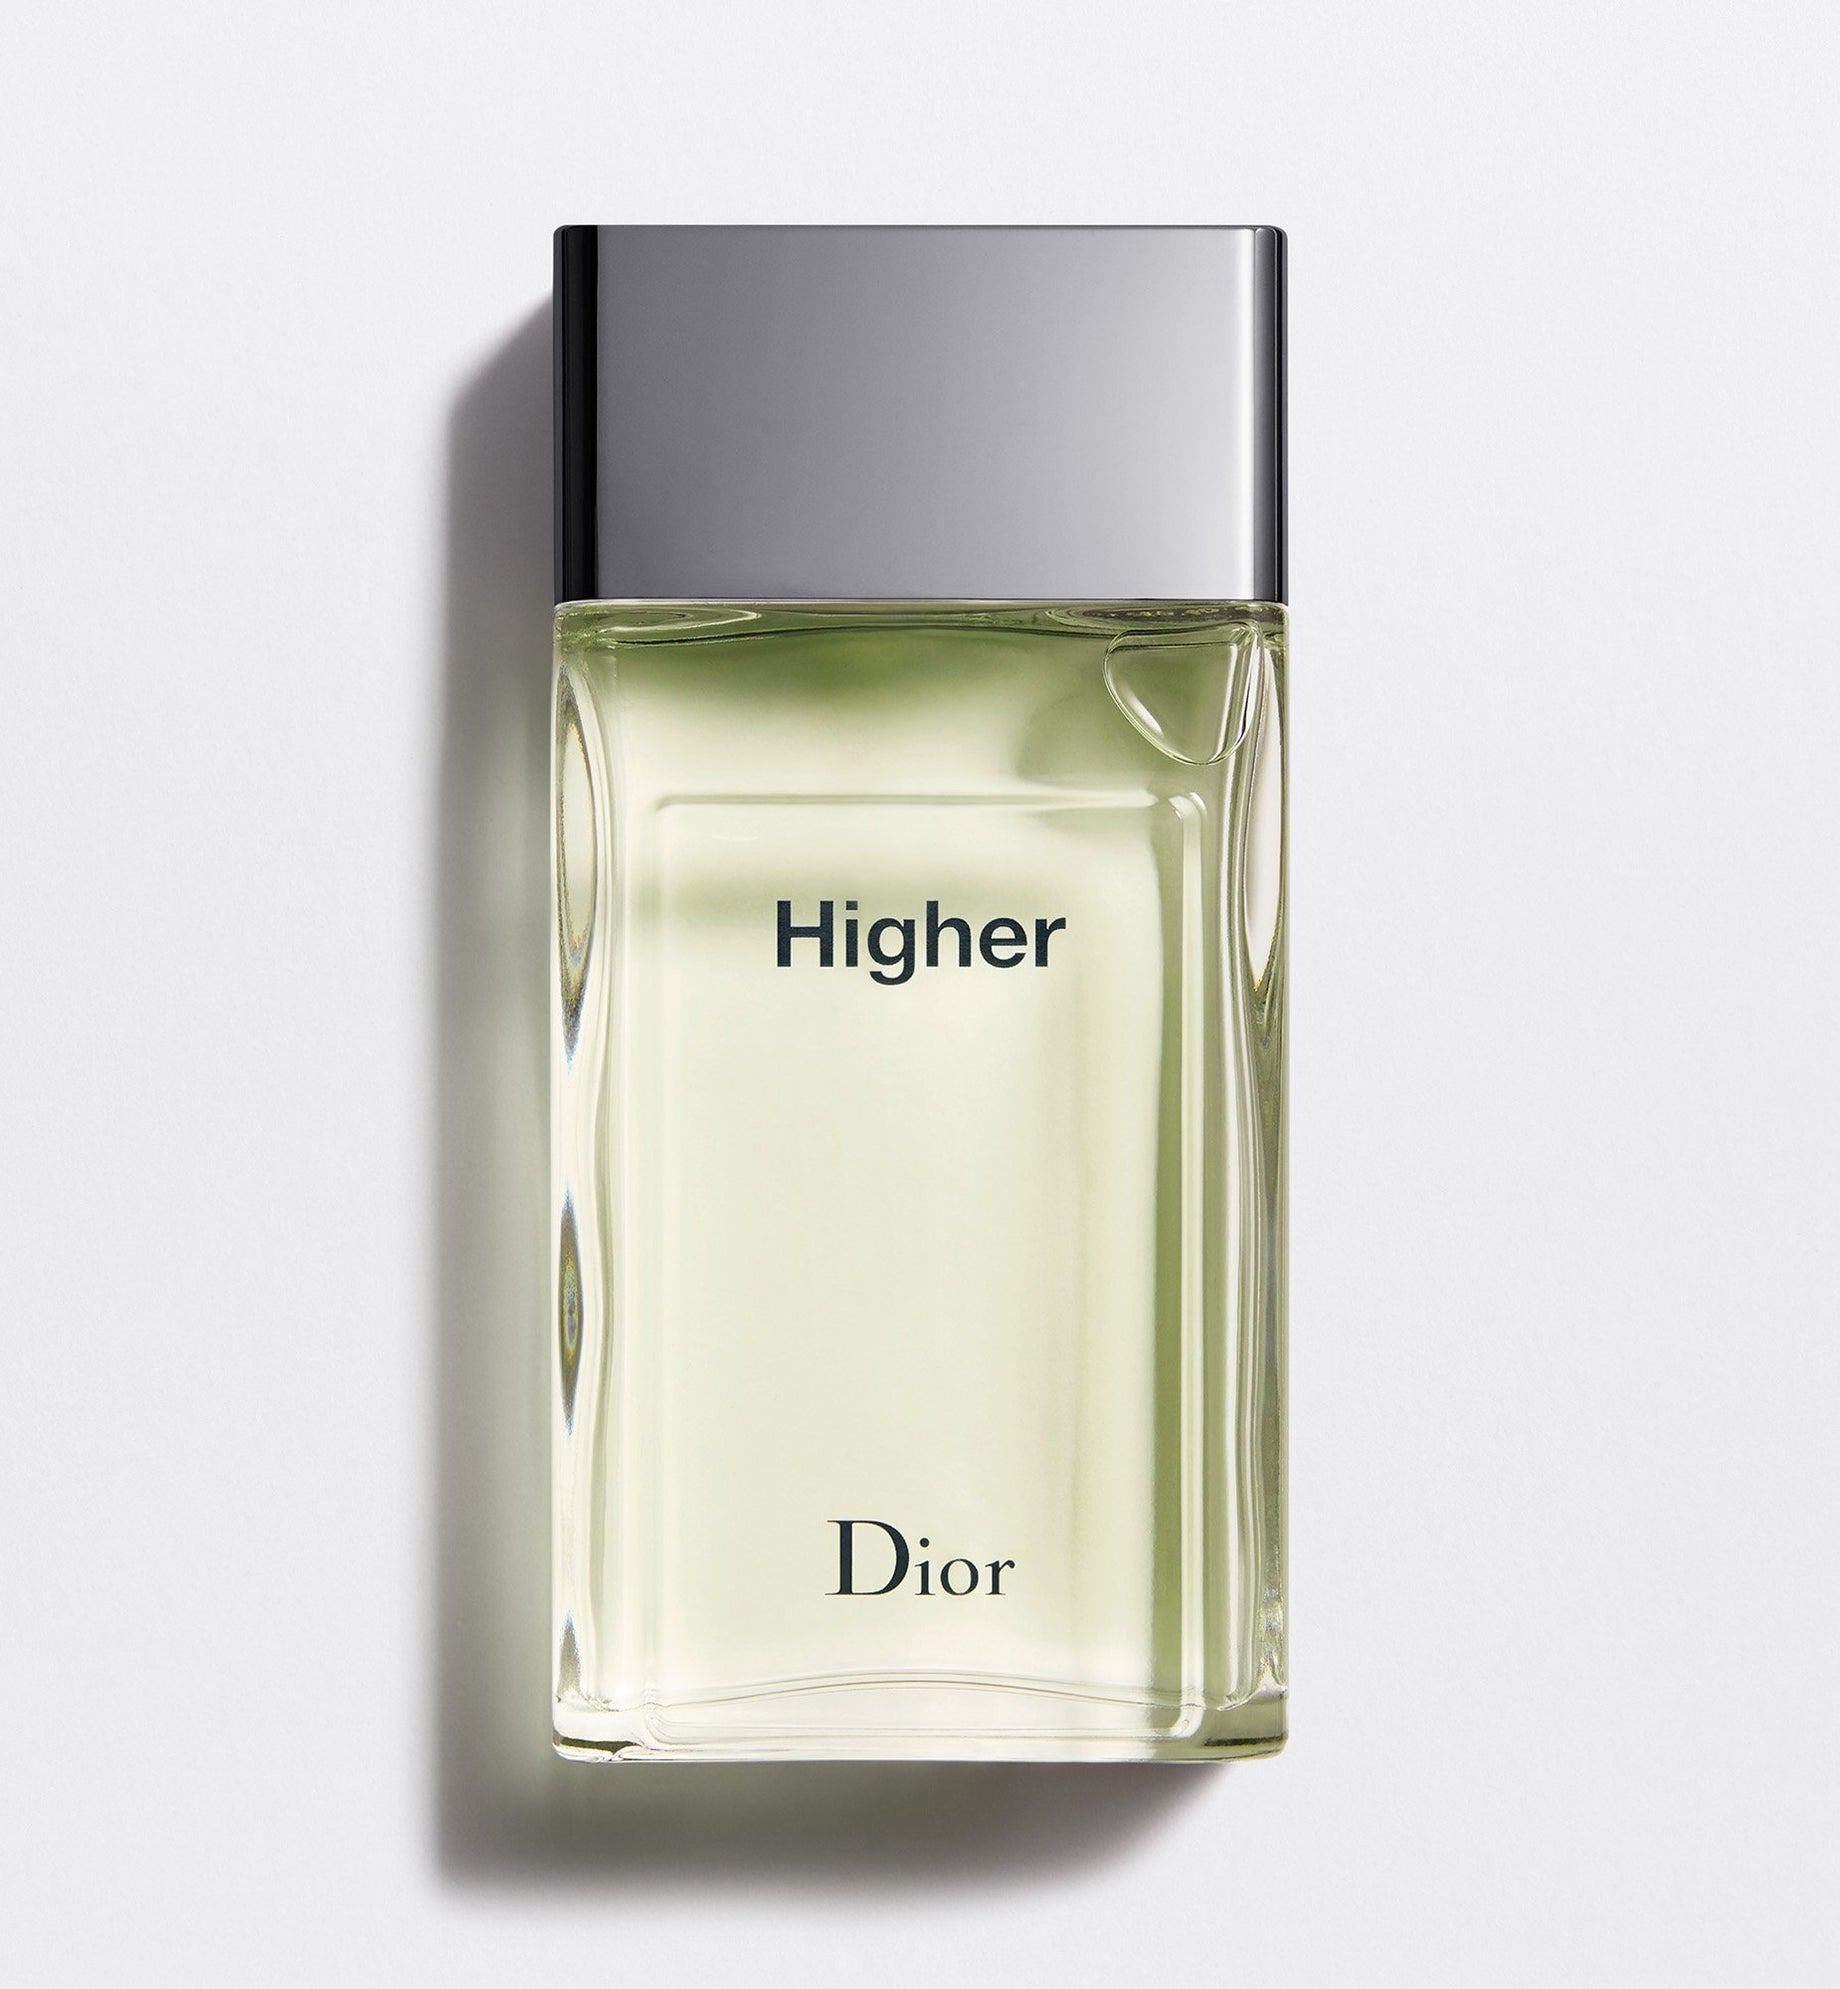 HIGHER EAU DE TOILETTE